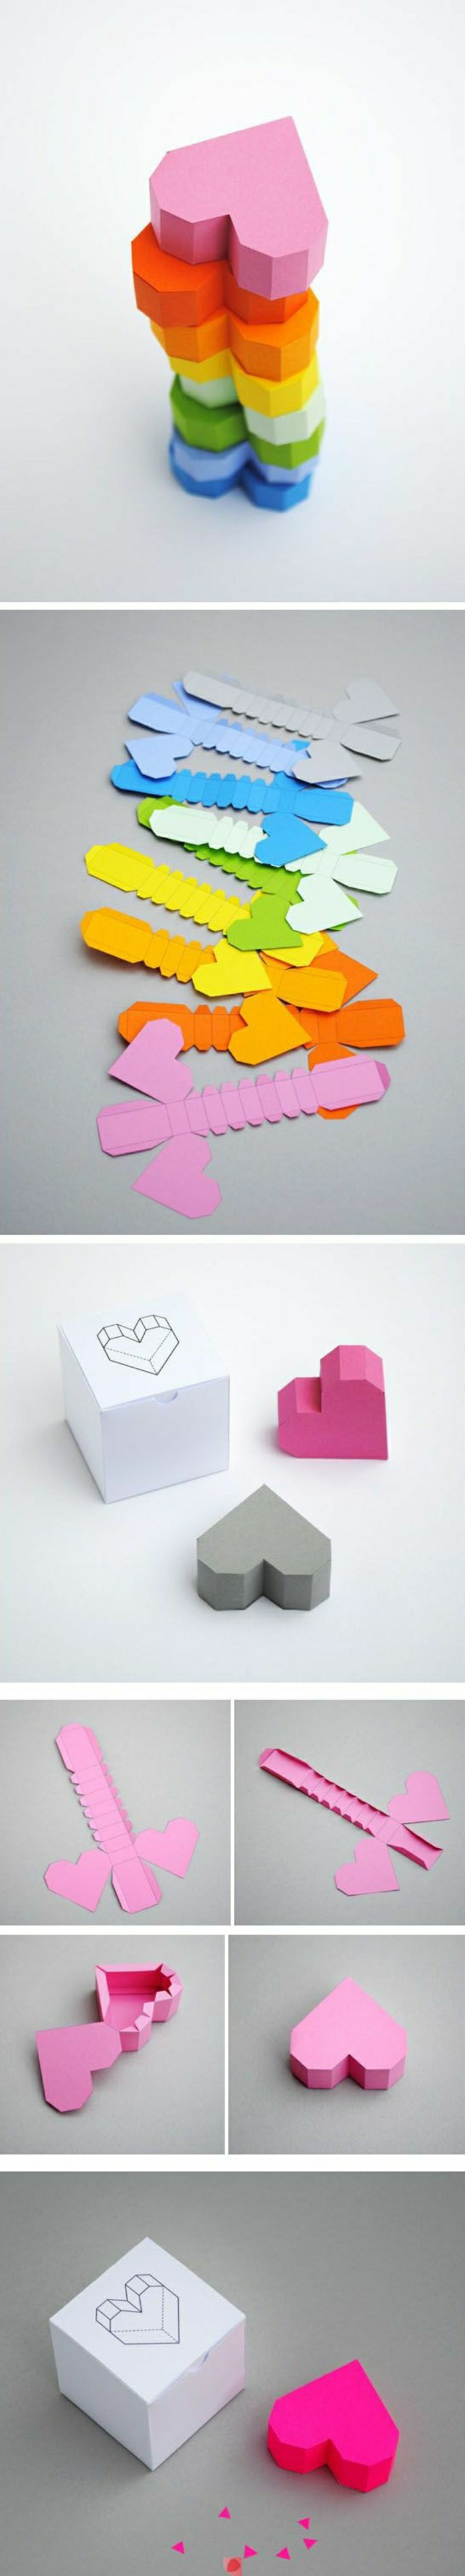 Diy d co de table mariage total 30 eur - Faire un coeur en papier ...